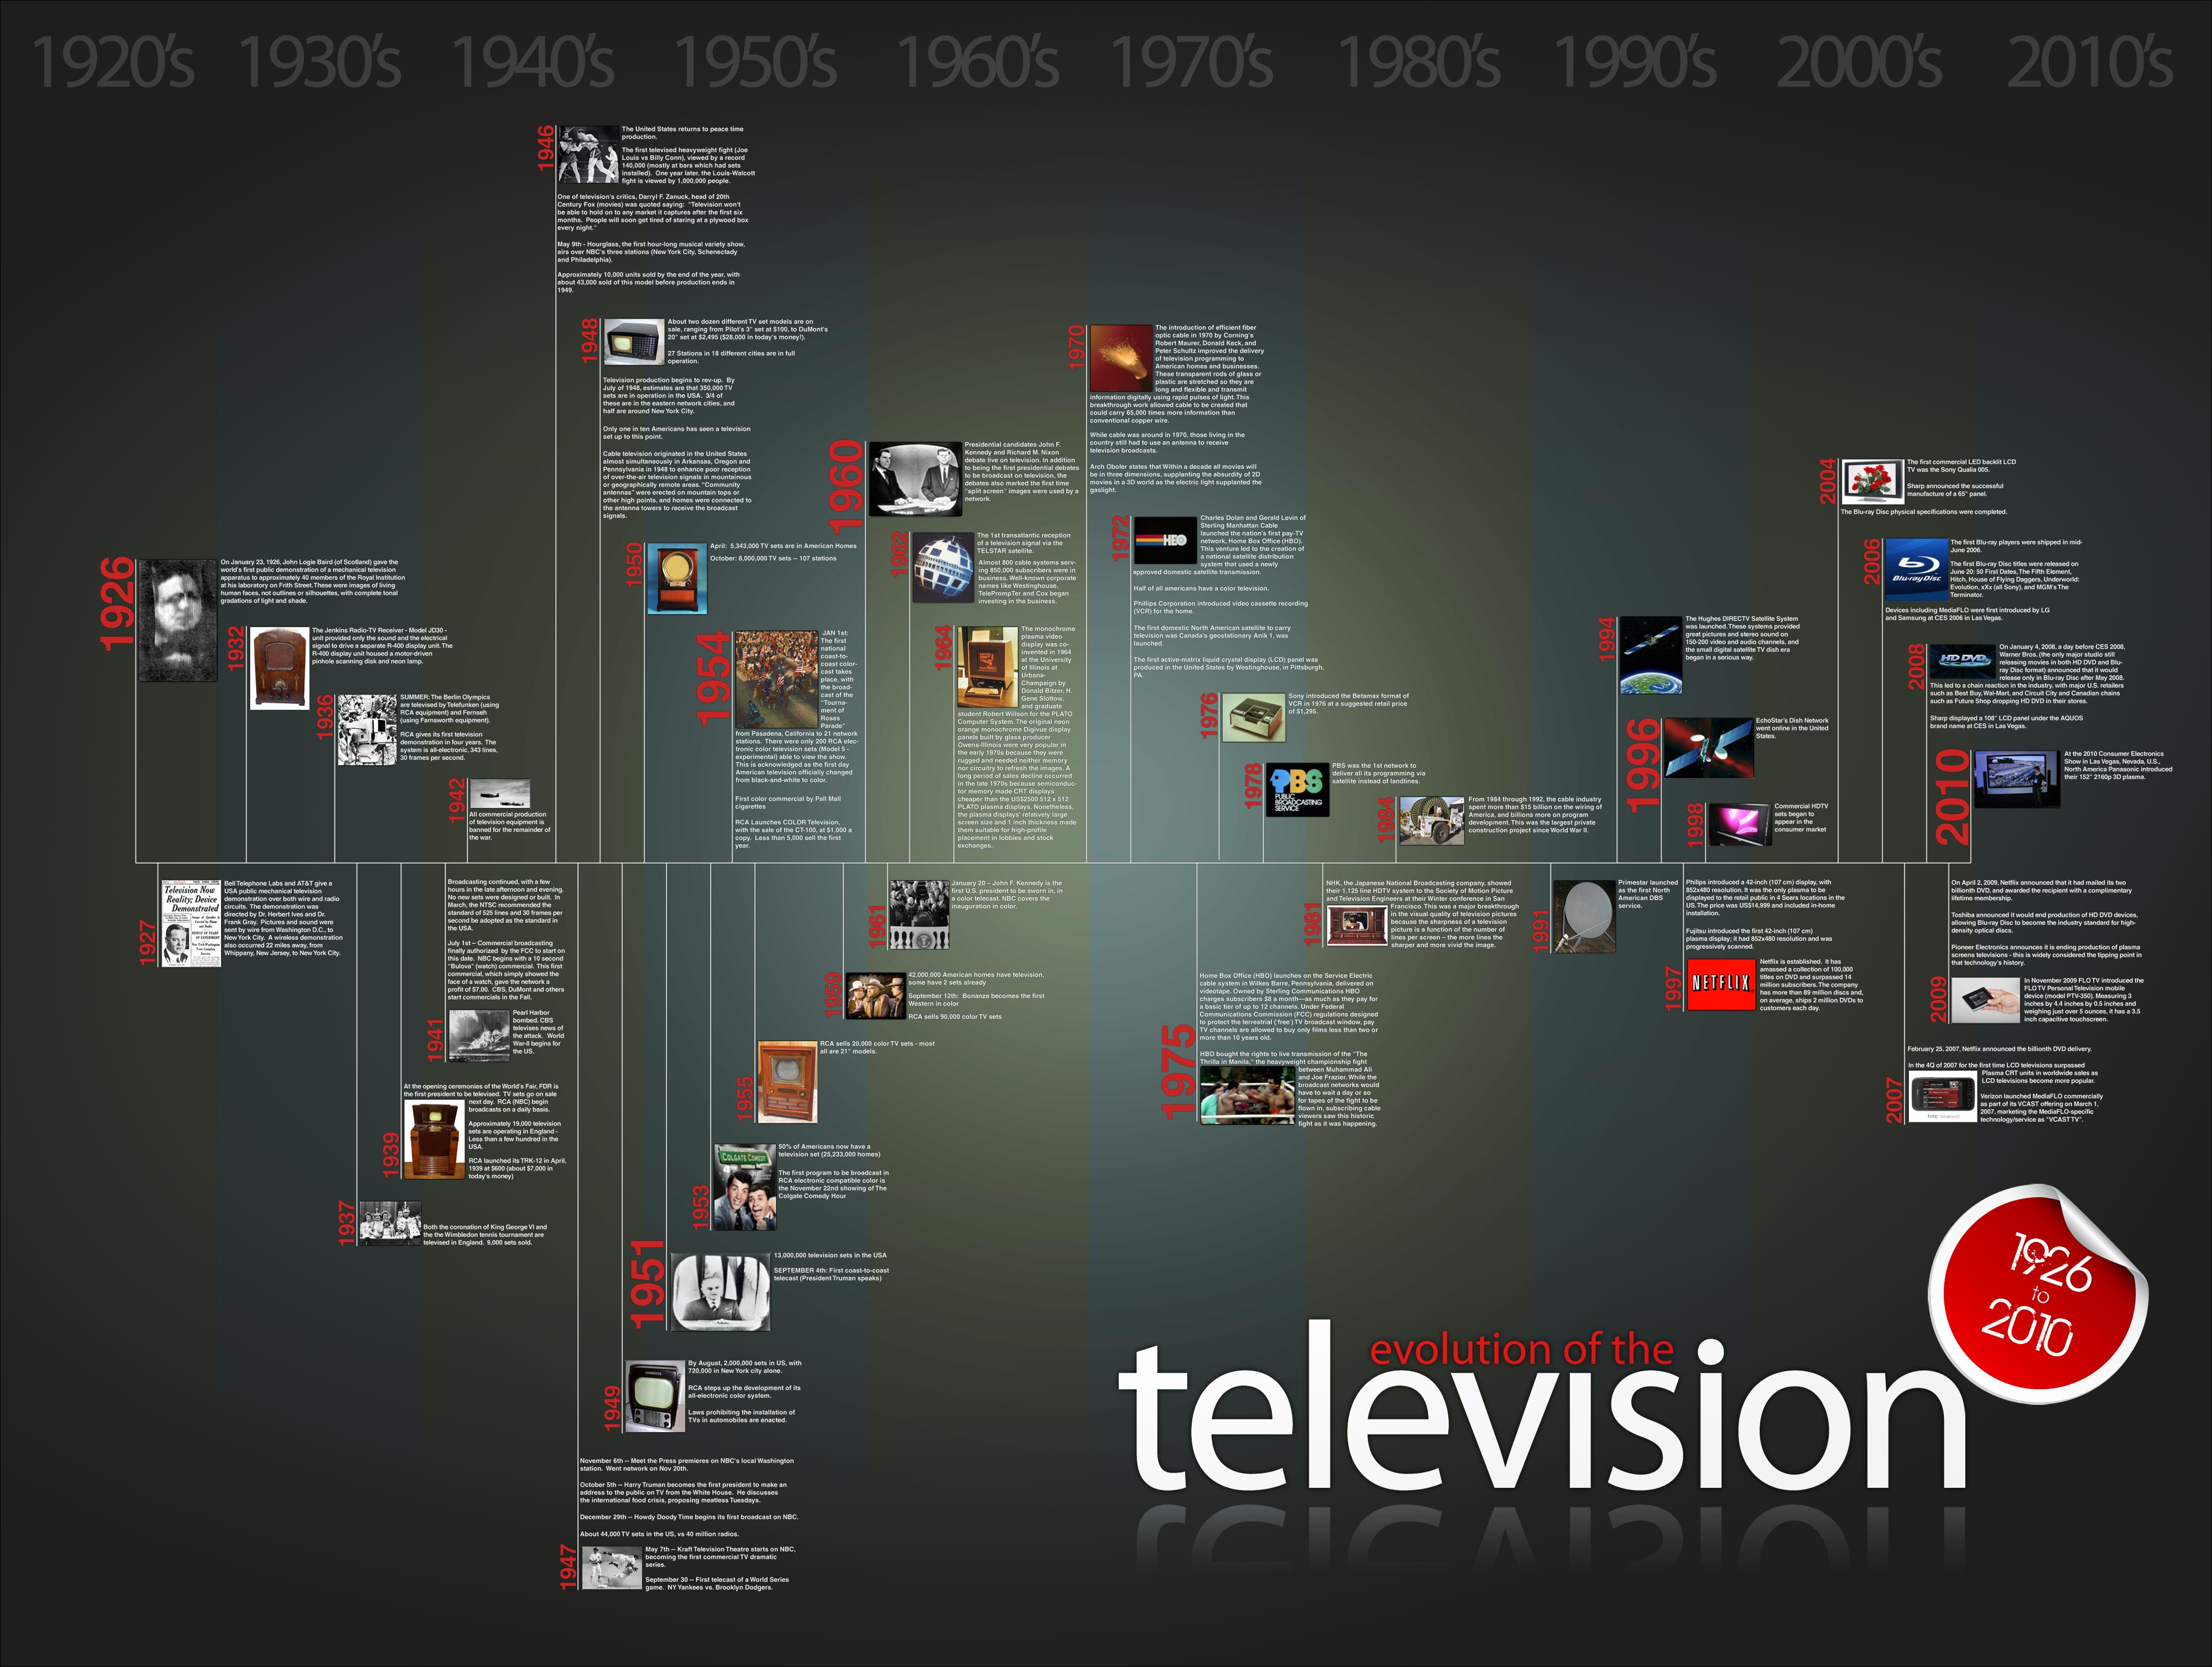 history of tv media essay The archive of american television captures tv history, one voice at a time through video interviews with tv stars and legends use of the media to gain.